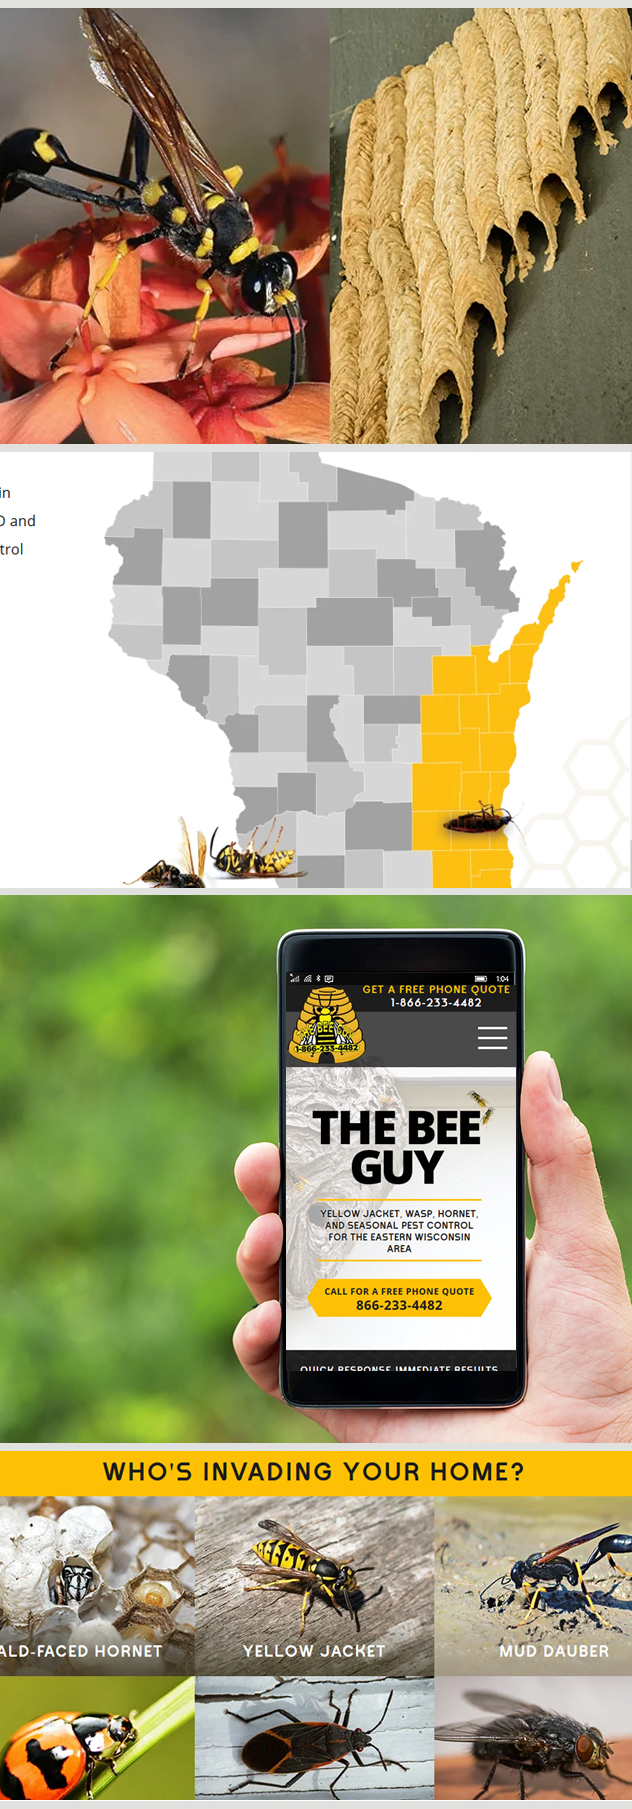 Milwaukee web marketing for The Bee Guy